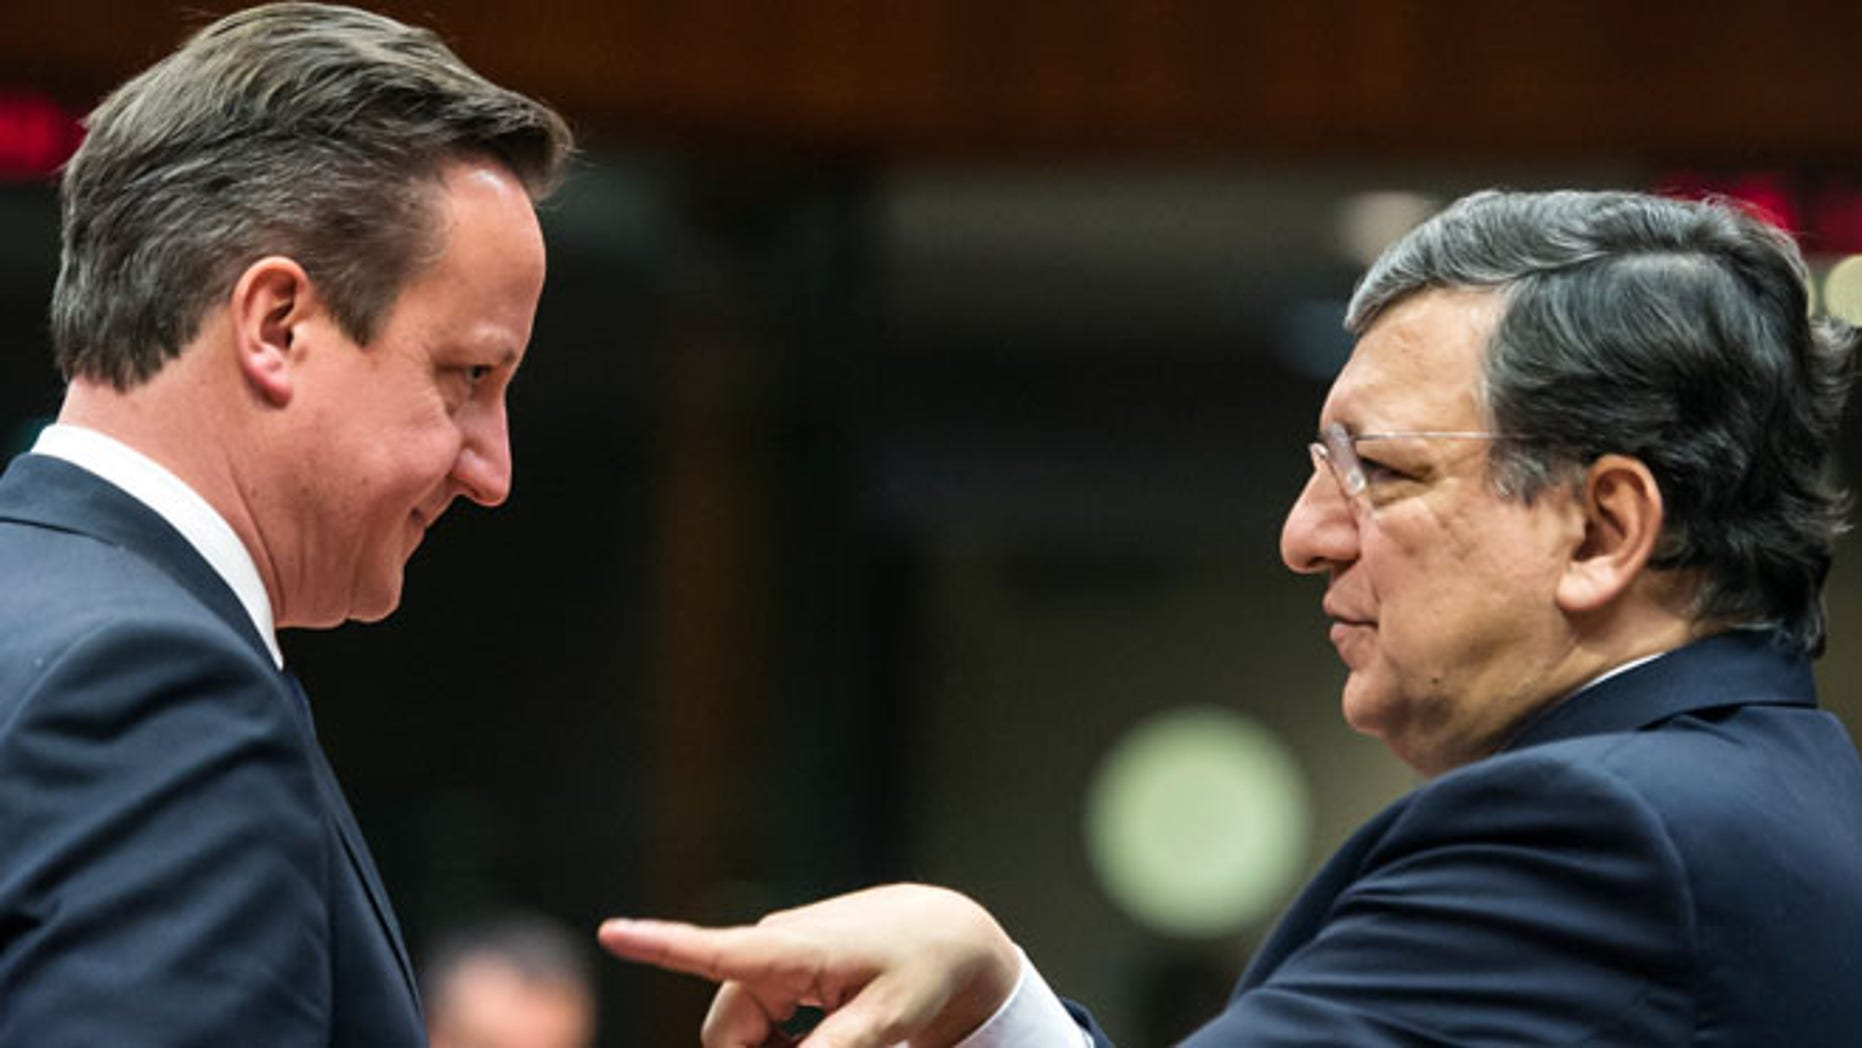 Mar. 20, 2014: European Commission President Jose Manuel Barroso, right, gestures while speaking with British Prime Minister David Cameron during a round table meeting an EU summit in Brussels.